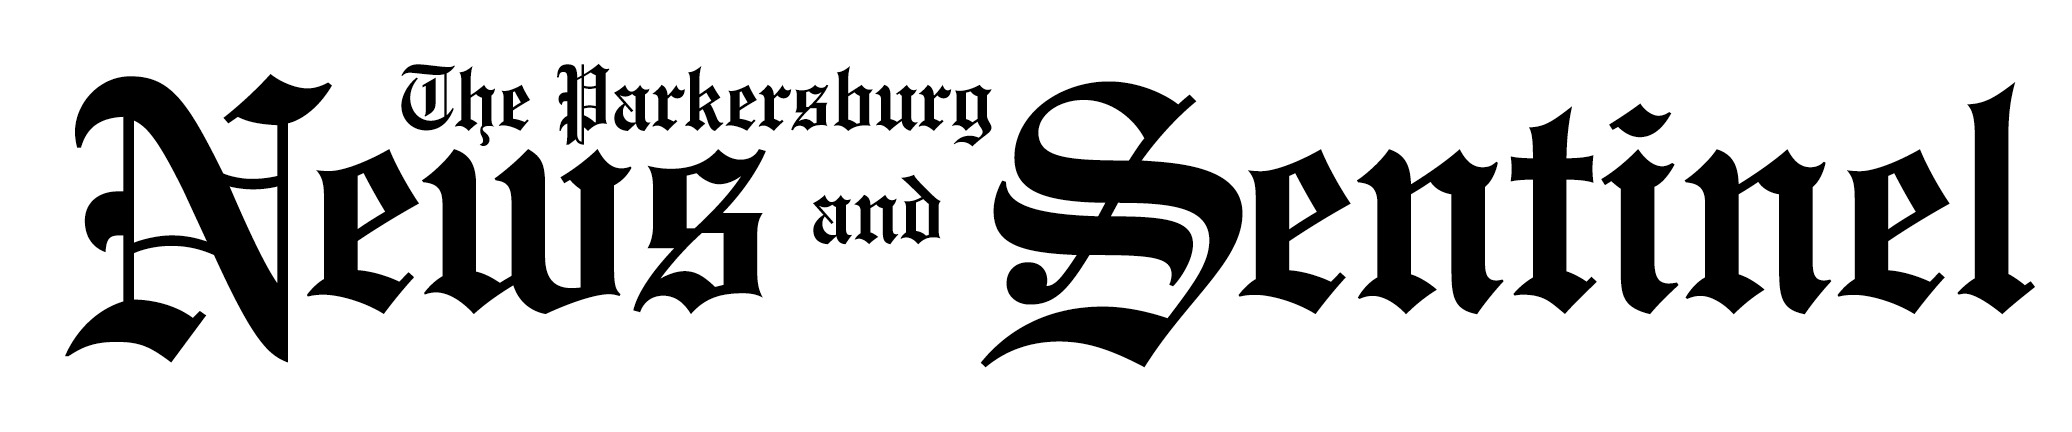 The Parkersburg News and Sentinel